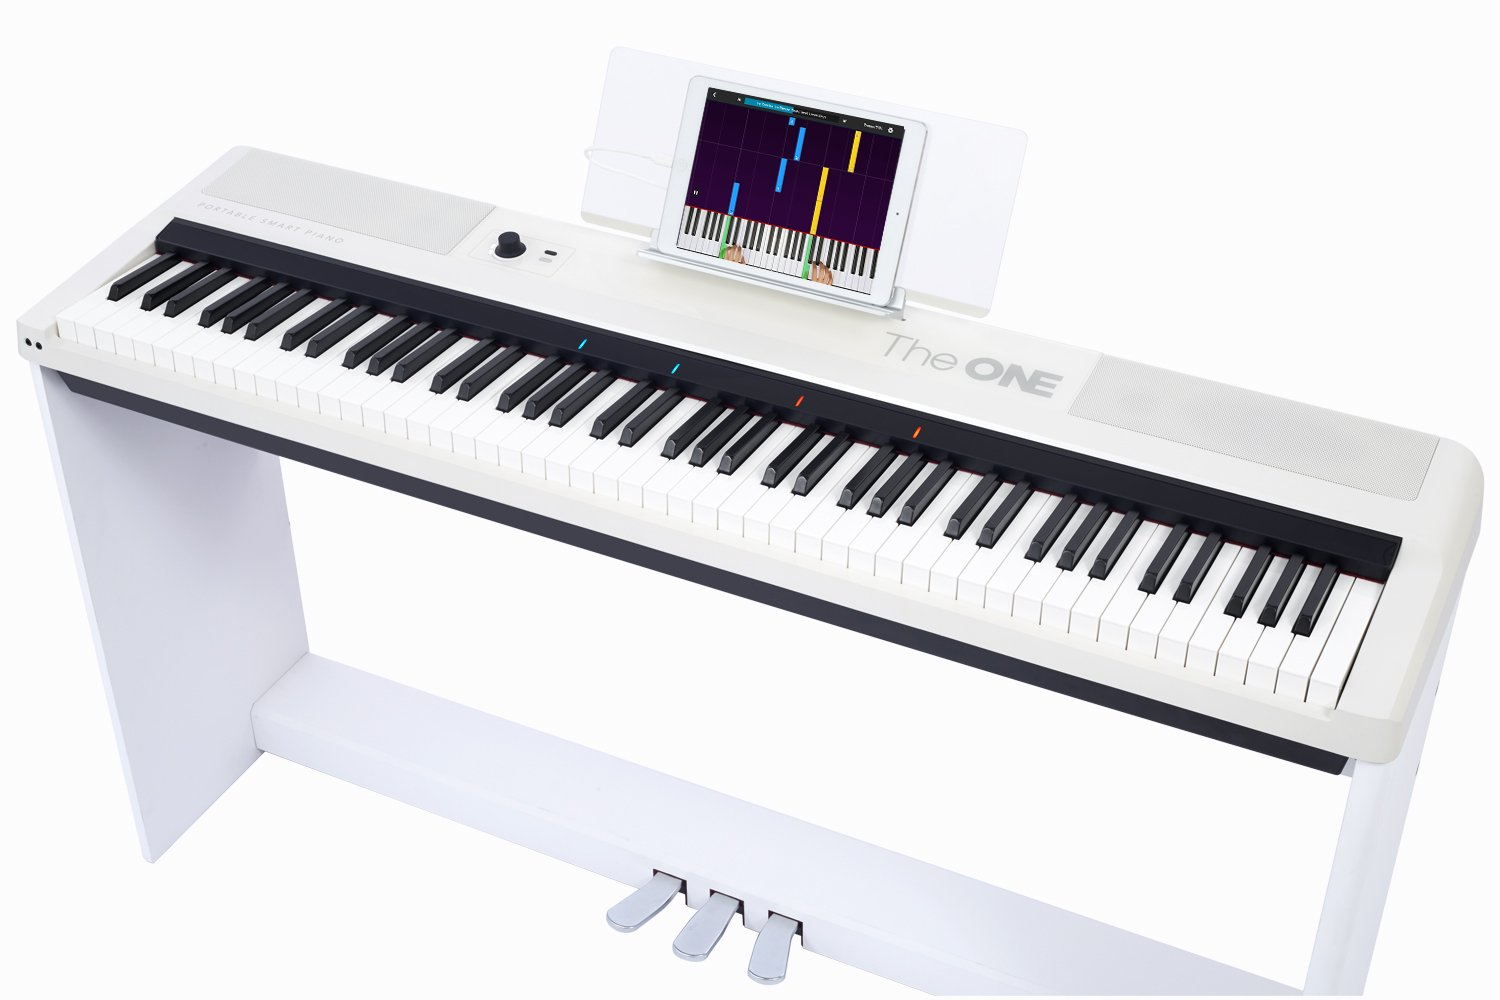 The ONE Smart Keyboard Pro, 88-Key Digital Piano Keyboard, Portable Digital Piano, Weighted Action Keys, White by The ONE Music Group (Image #5)